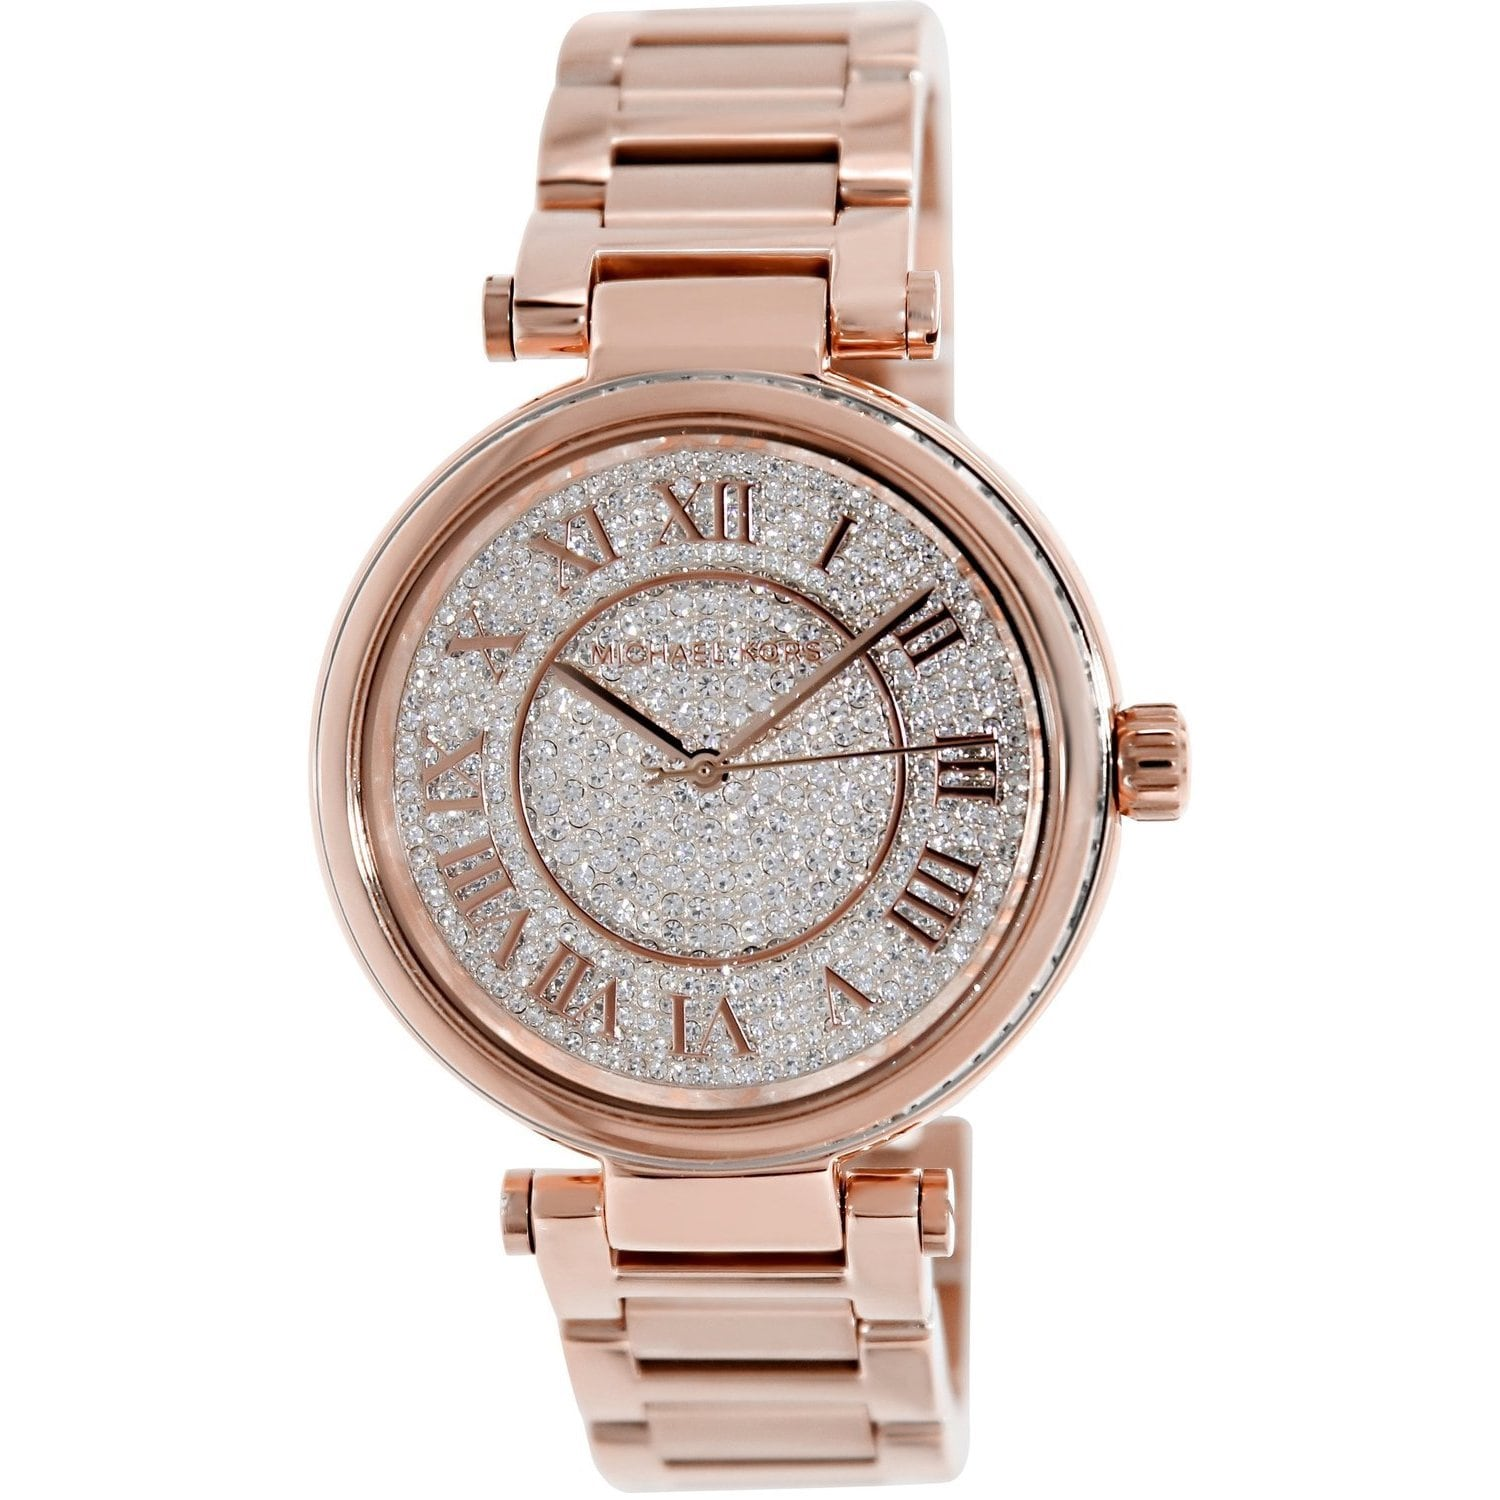 11d34717b69c Shop Michael Kors Women s MK5868 Skylar Rose Goldtone Stainless Steel Watch  - Free Shipping Today - Overstock - 9188672